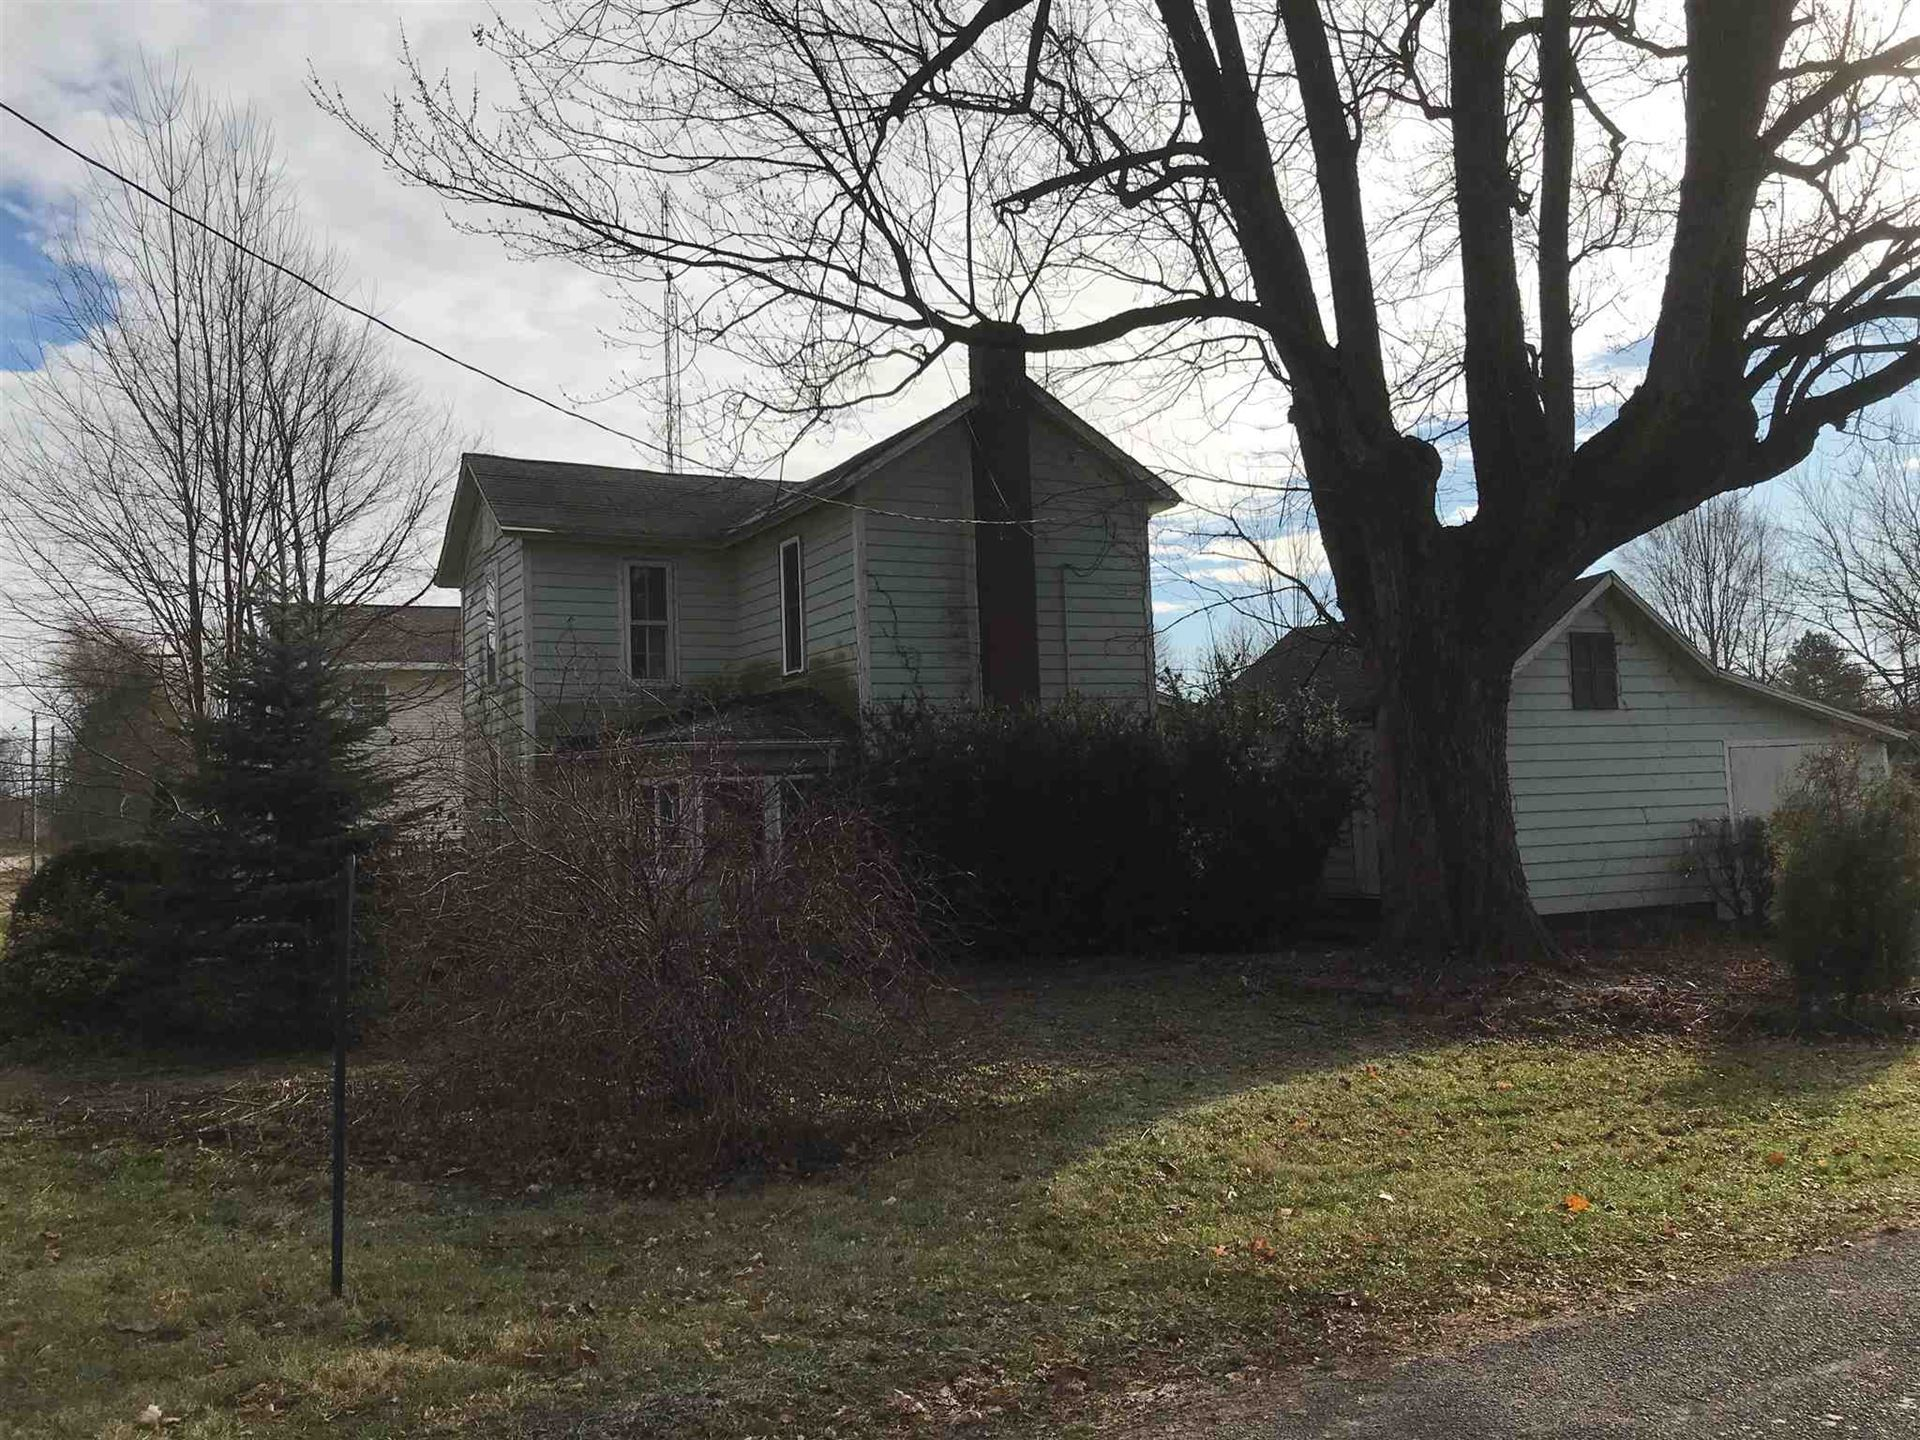 Photo of 201 E Center Street, Pierceton, IN 46562 (MLS # 202000242)